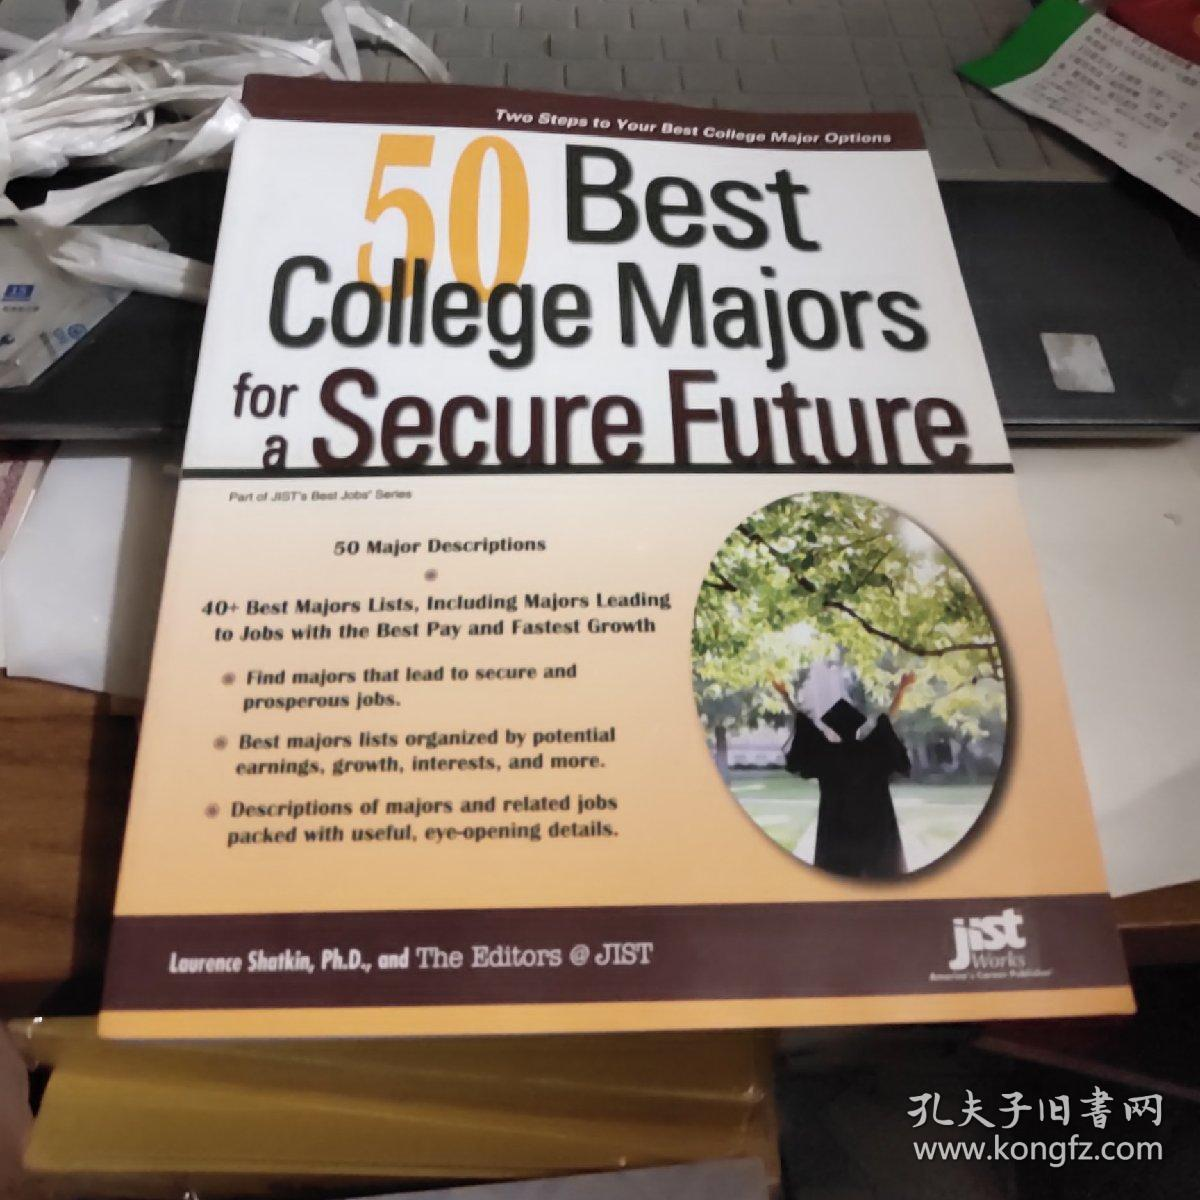 50 best college majors for a secure future【16开原版如图实物图】